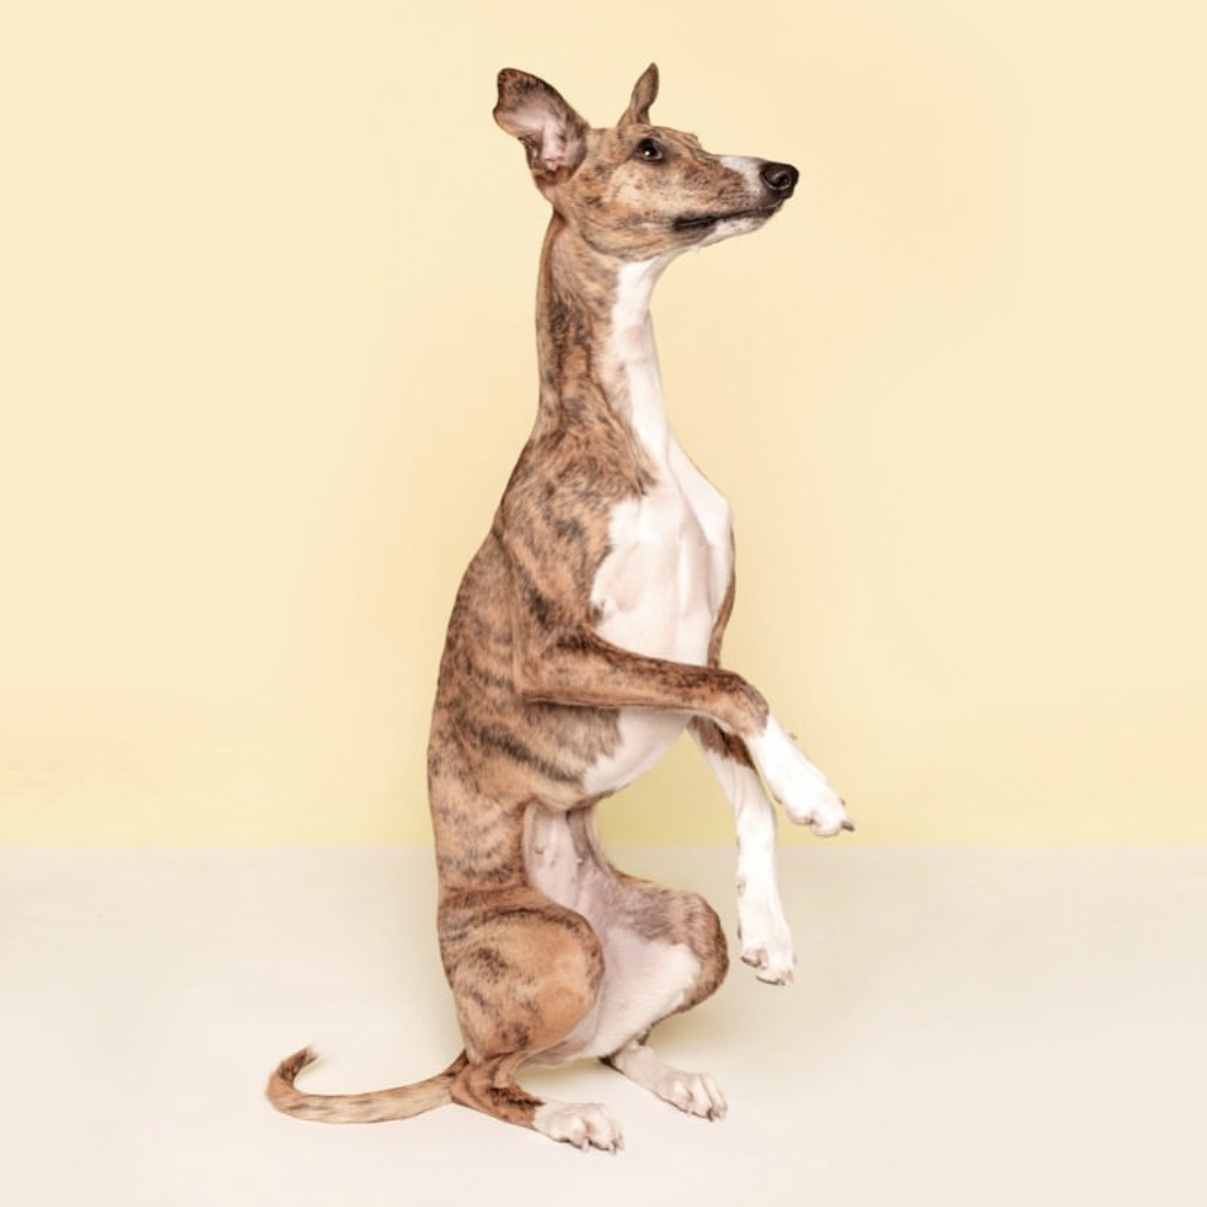 lolly the whippet dog model london bangers and mash 3.jpg